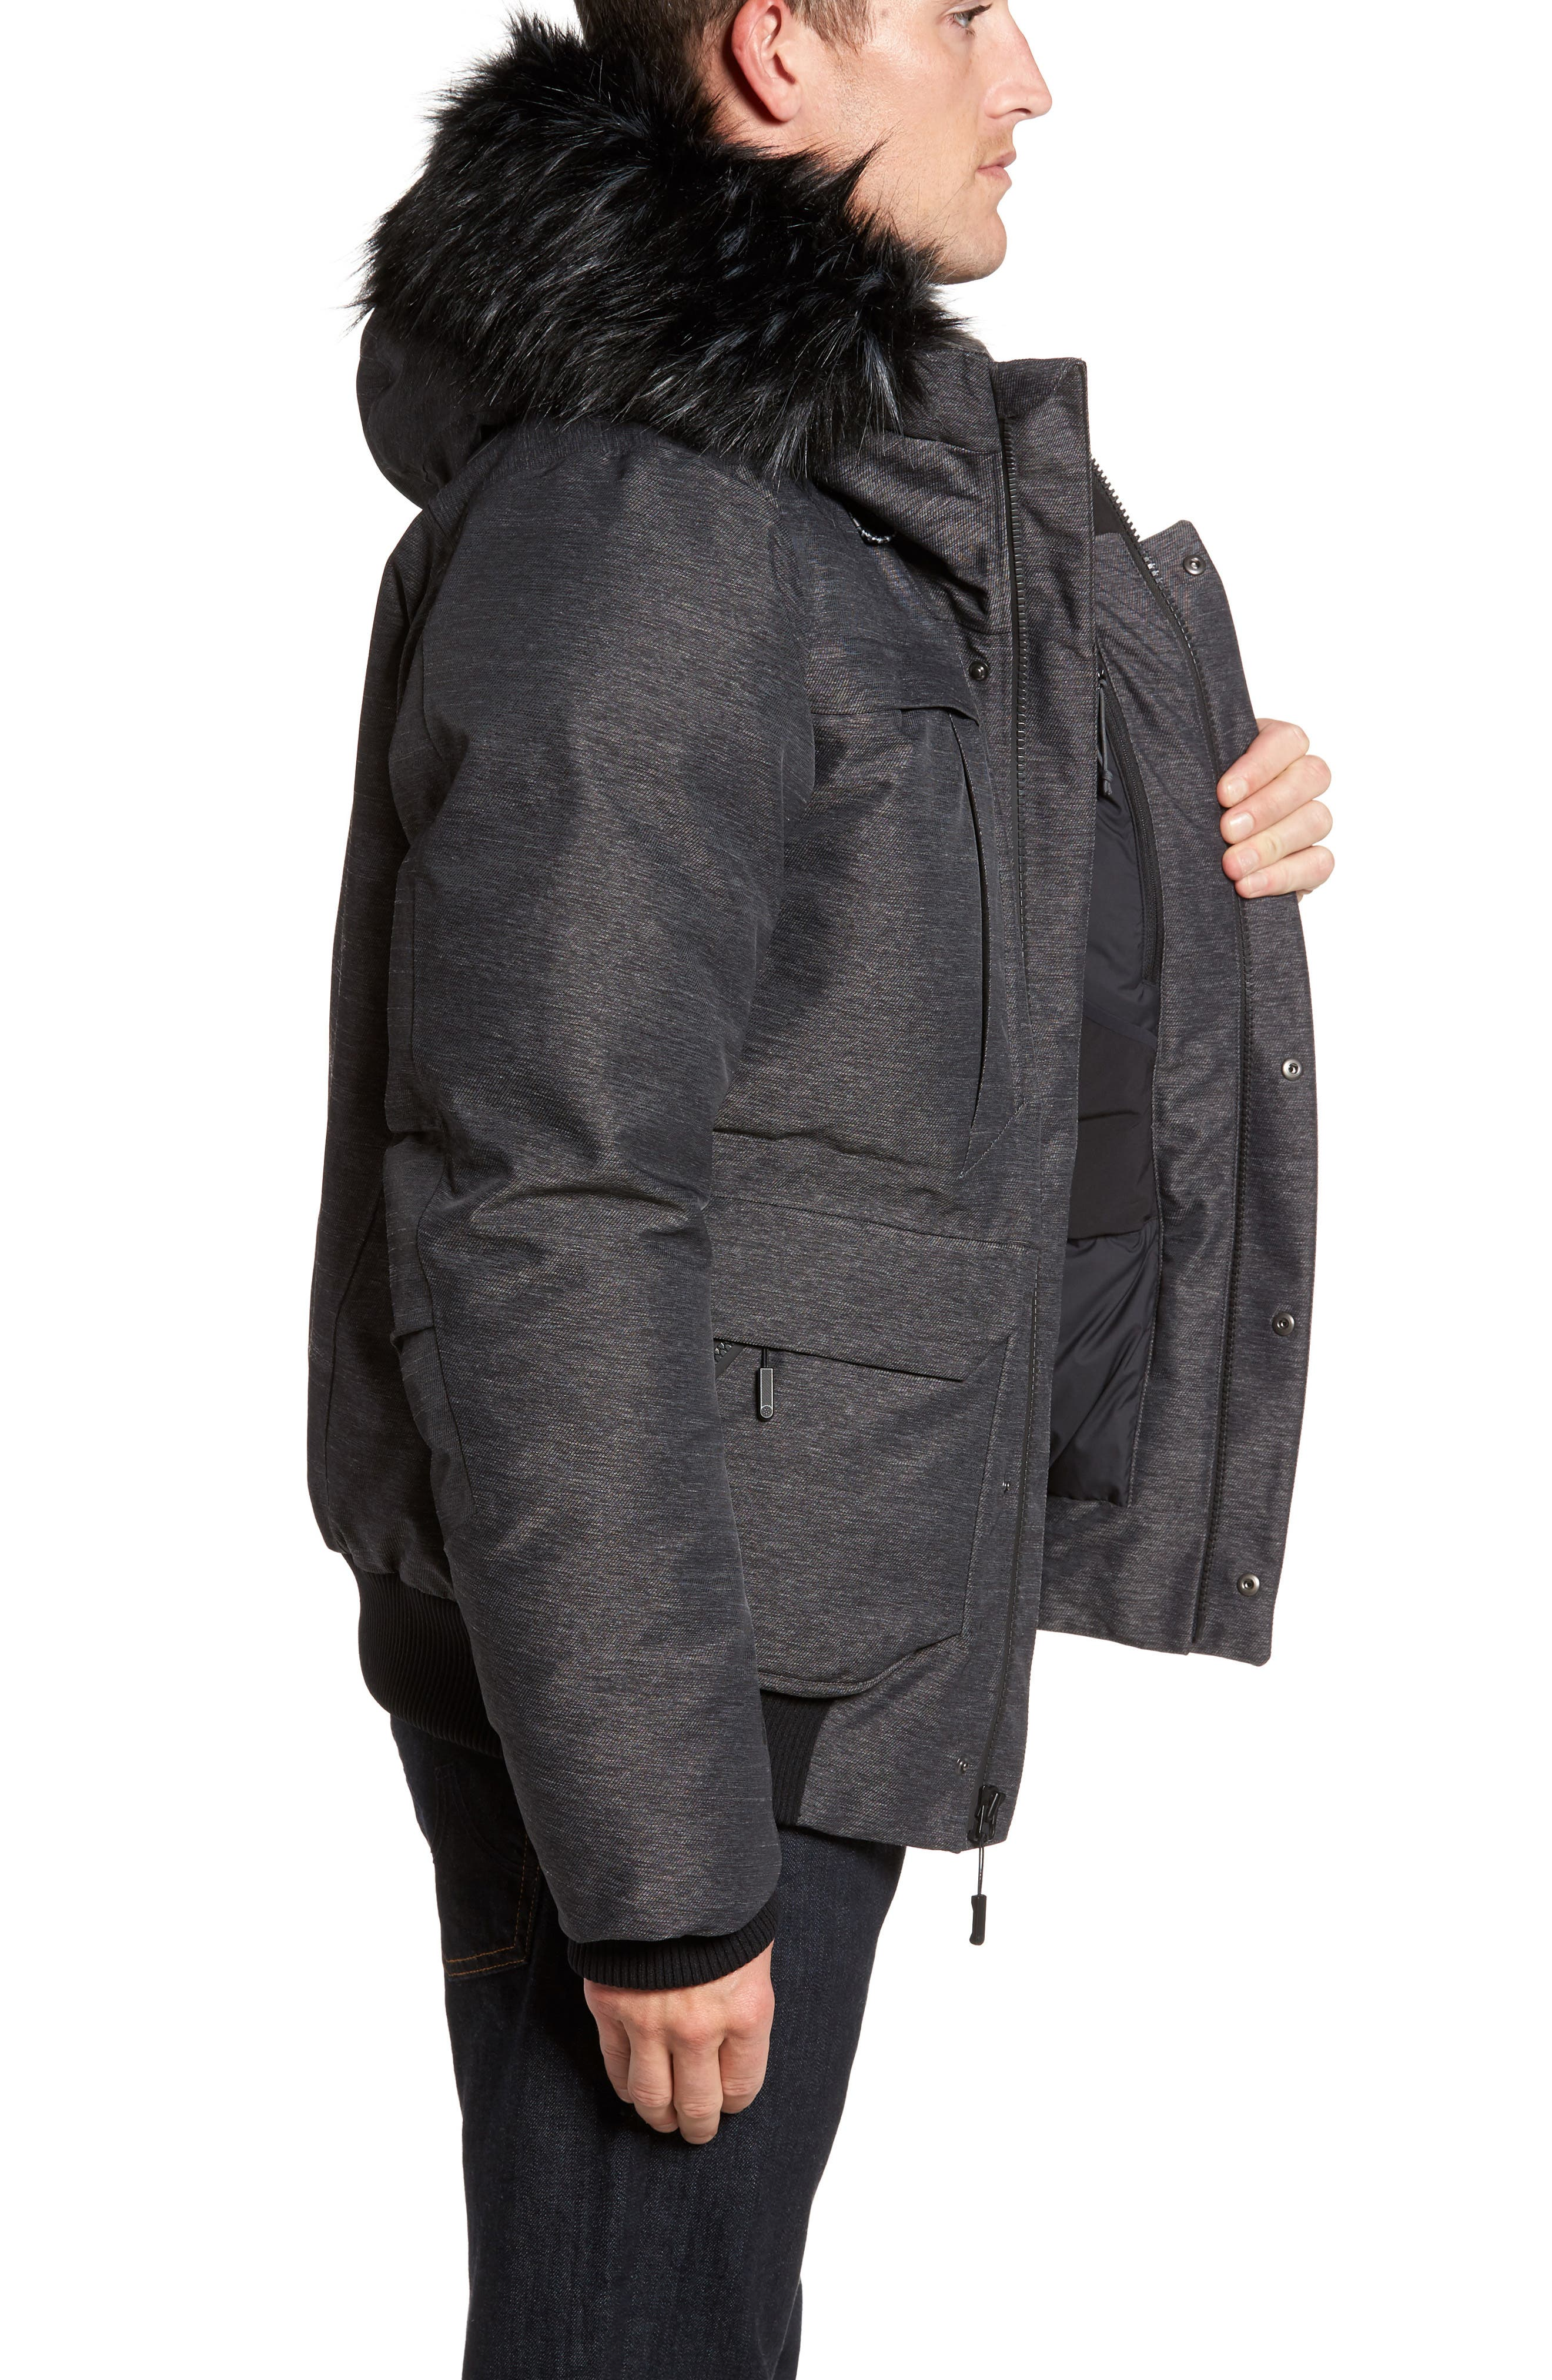 Cryos Expedition Gore-Tex<sup>®</sup> Bomber Jacket,                             Alternate thumbnail 8, color,